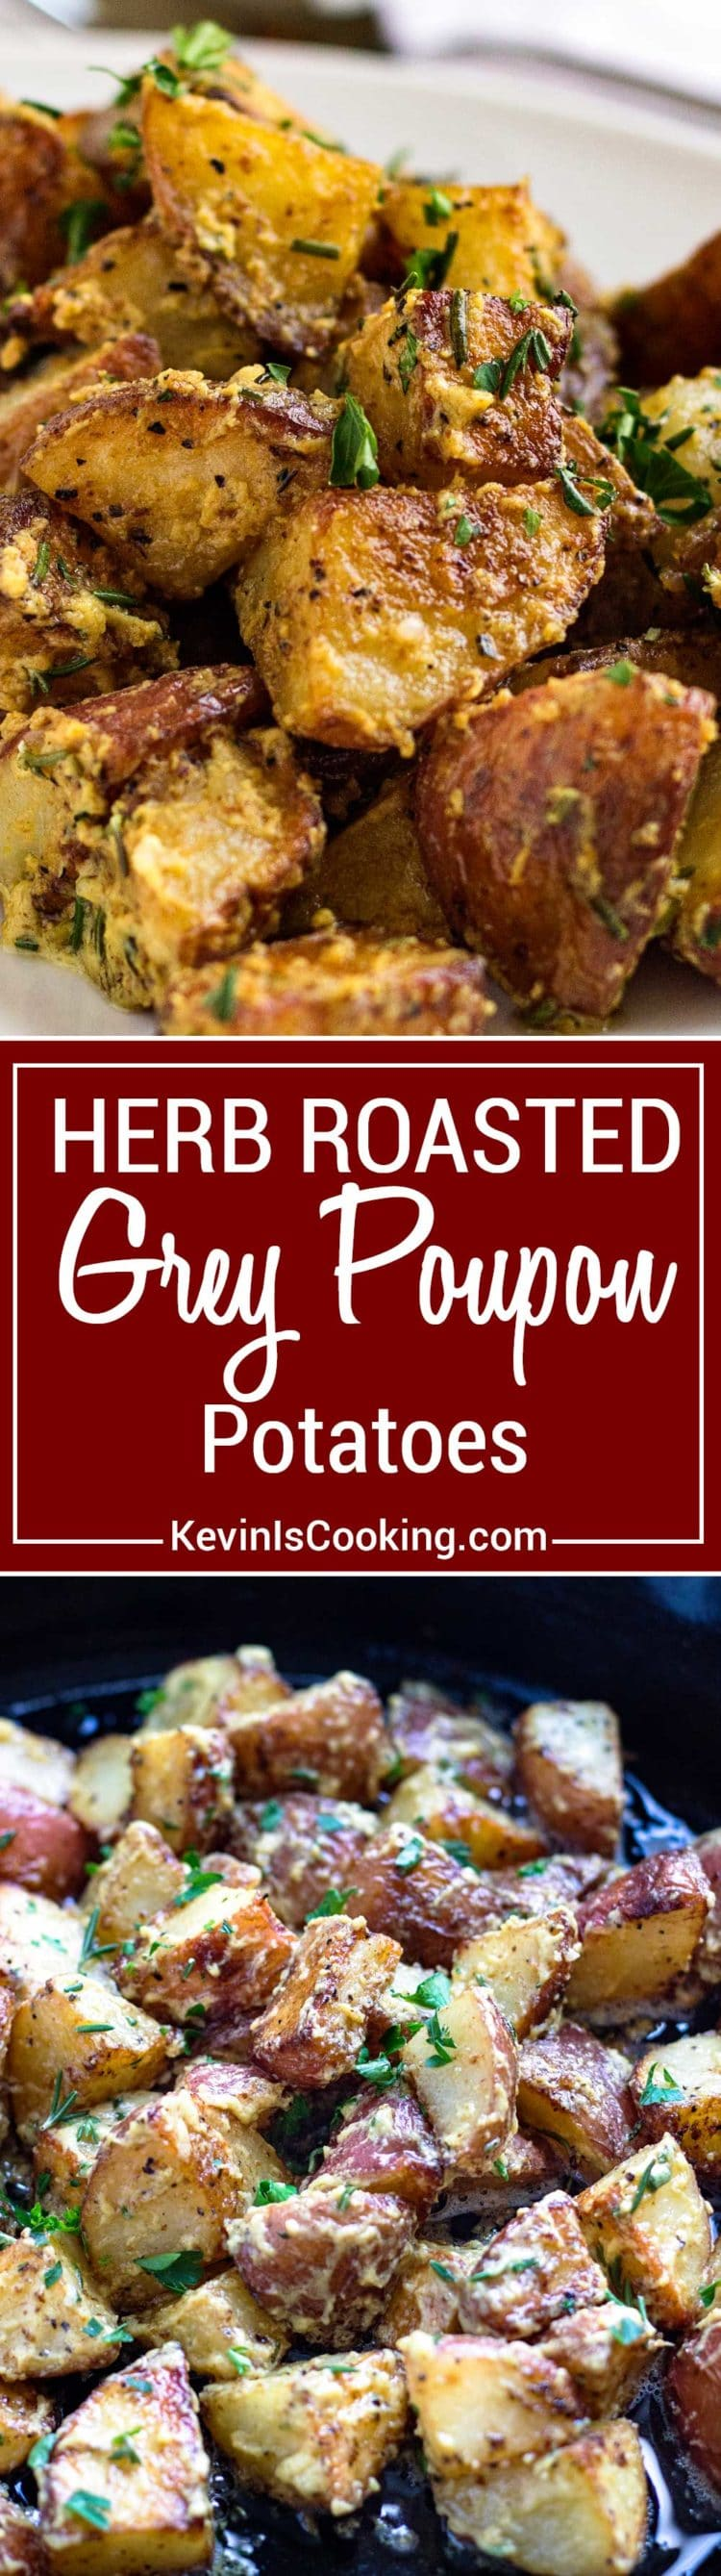 These Herb Roasted Poupon Potatoes couldn't be any easier. Caramelized red potatoes that are crispy on the outside all coated with a tangy sauce.